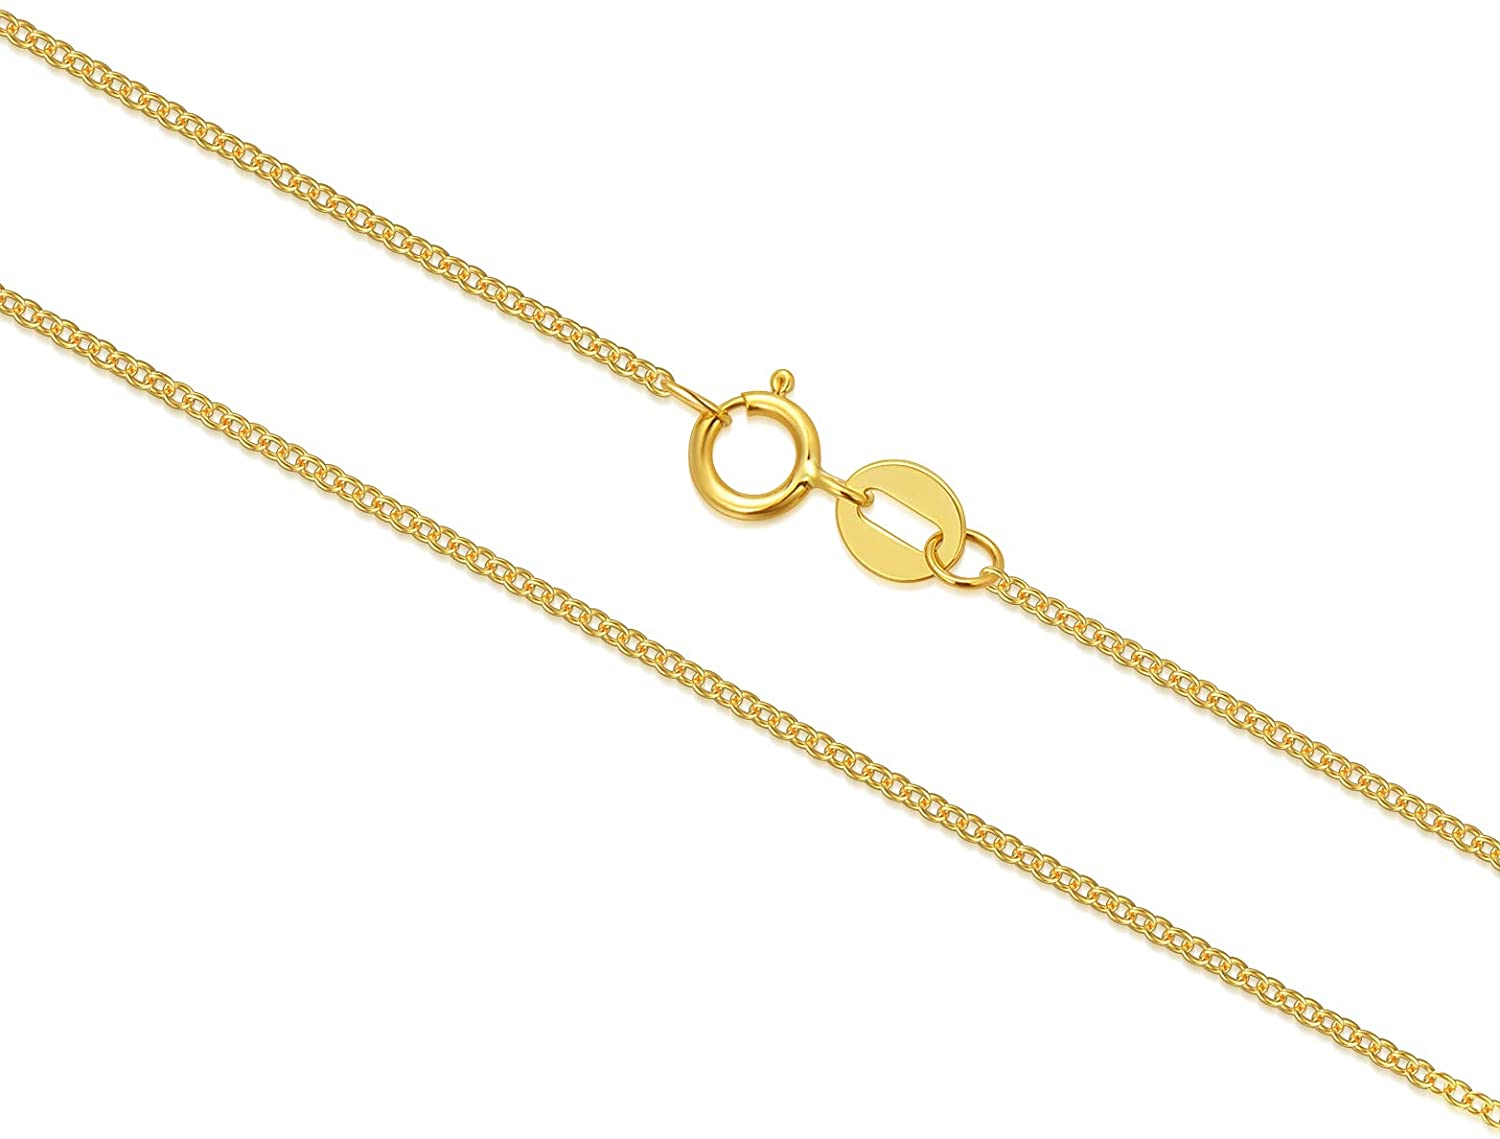 10k 14k 18k Real Gold Chain for Women, Classic Thin Cable Chain Necklace-1mm, 1.2mm, 1.35mm, 1.6mm, Durable Strong Solid 14k Gold Chain Necklace Women